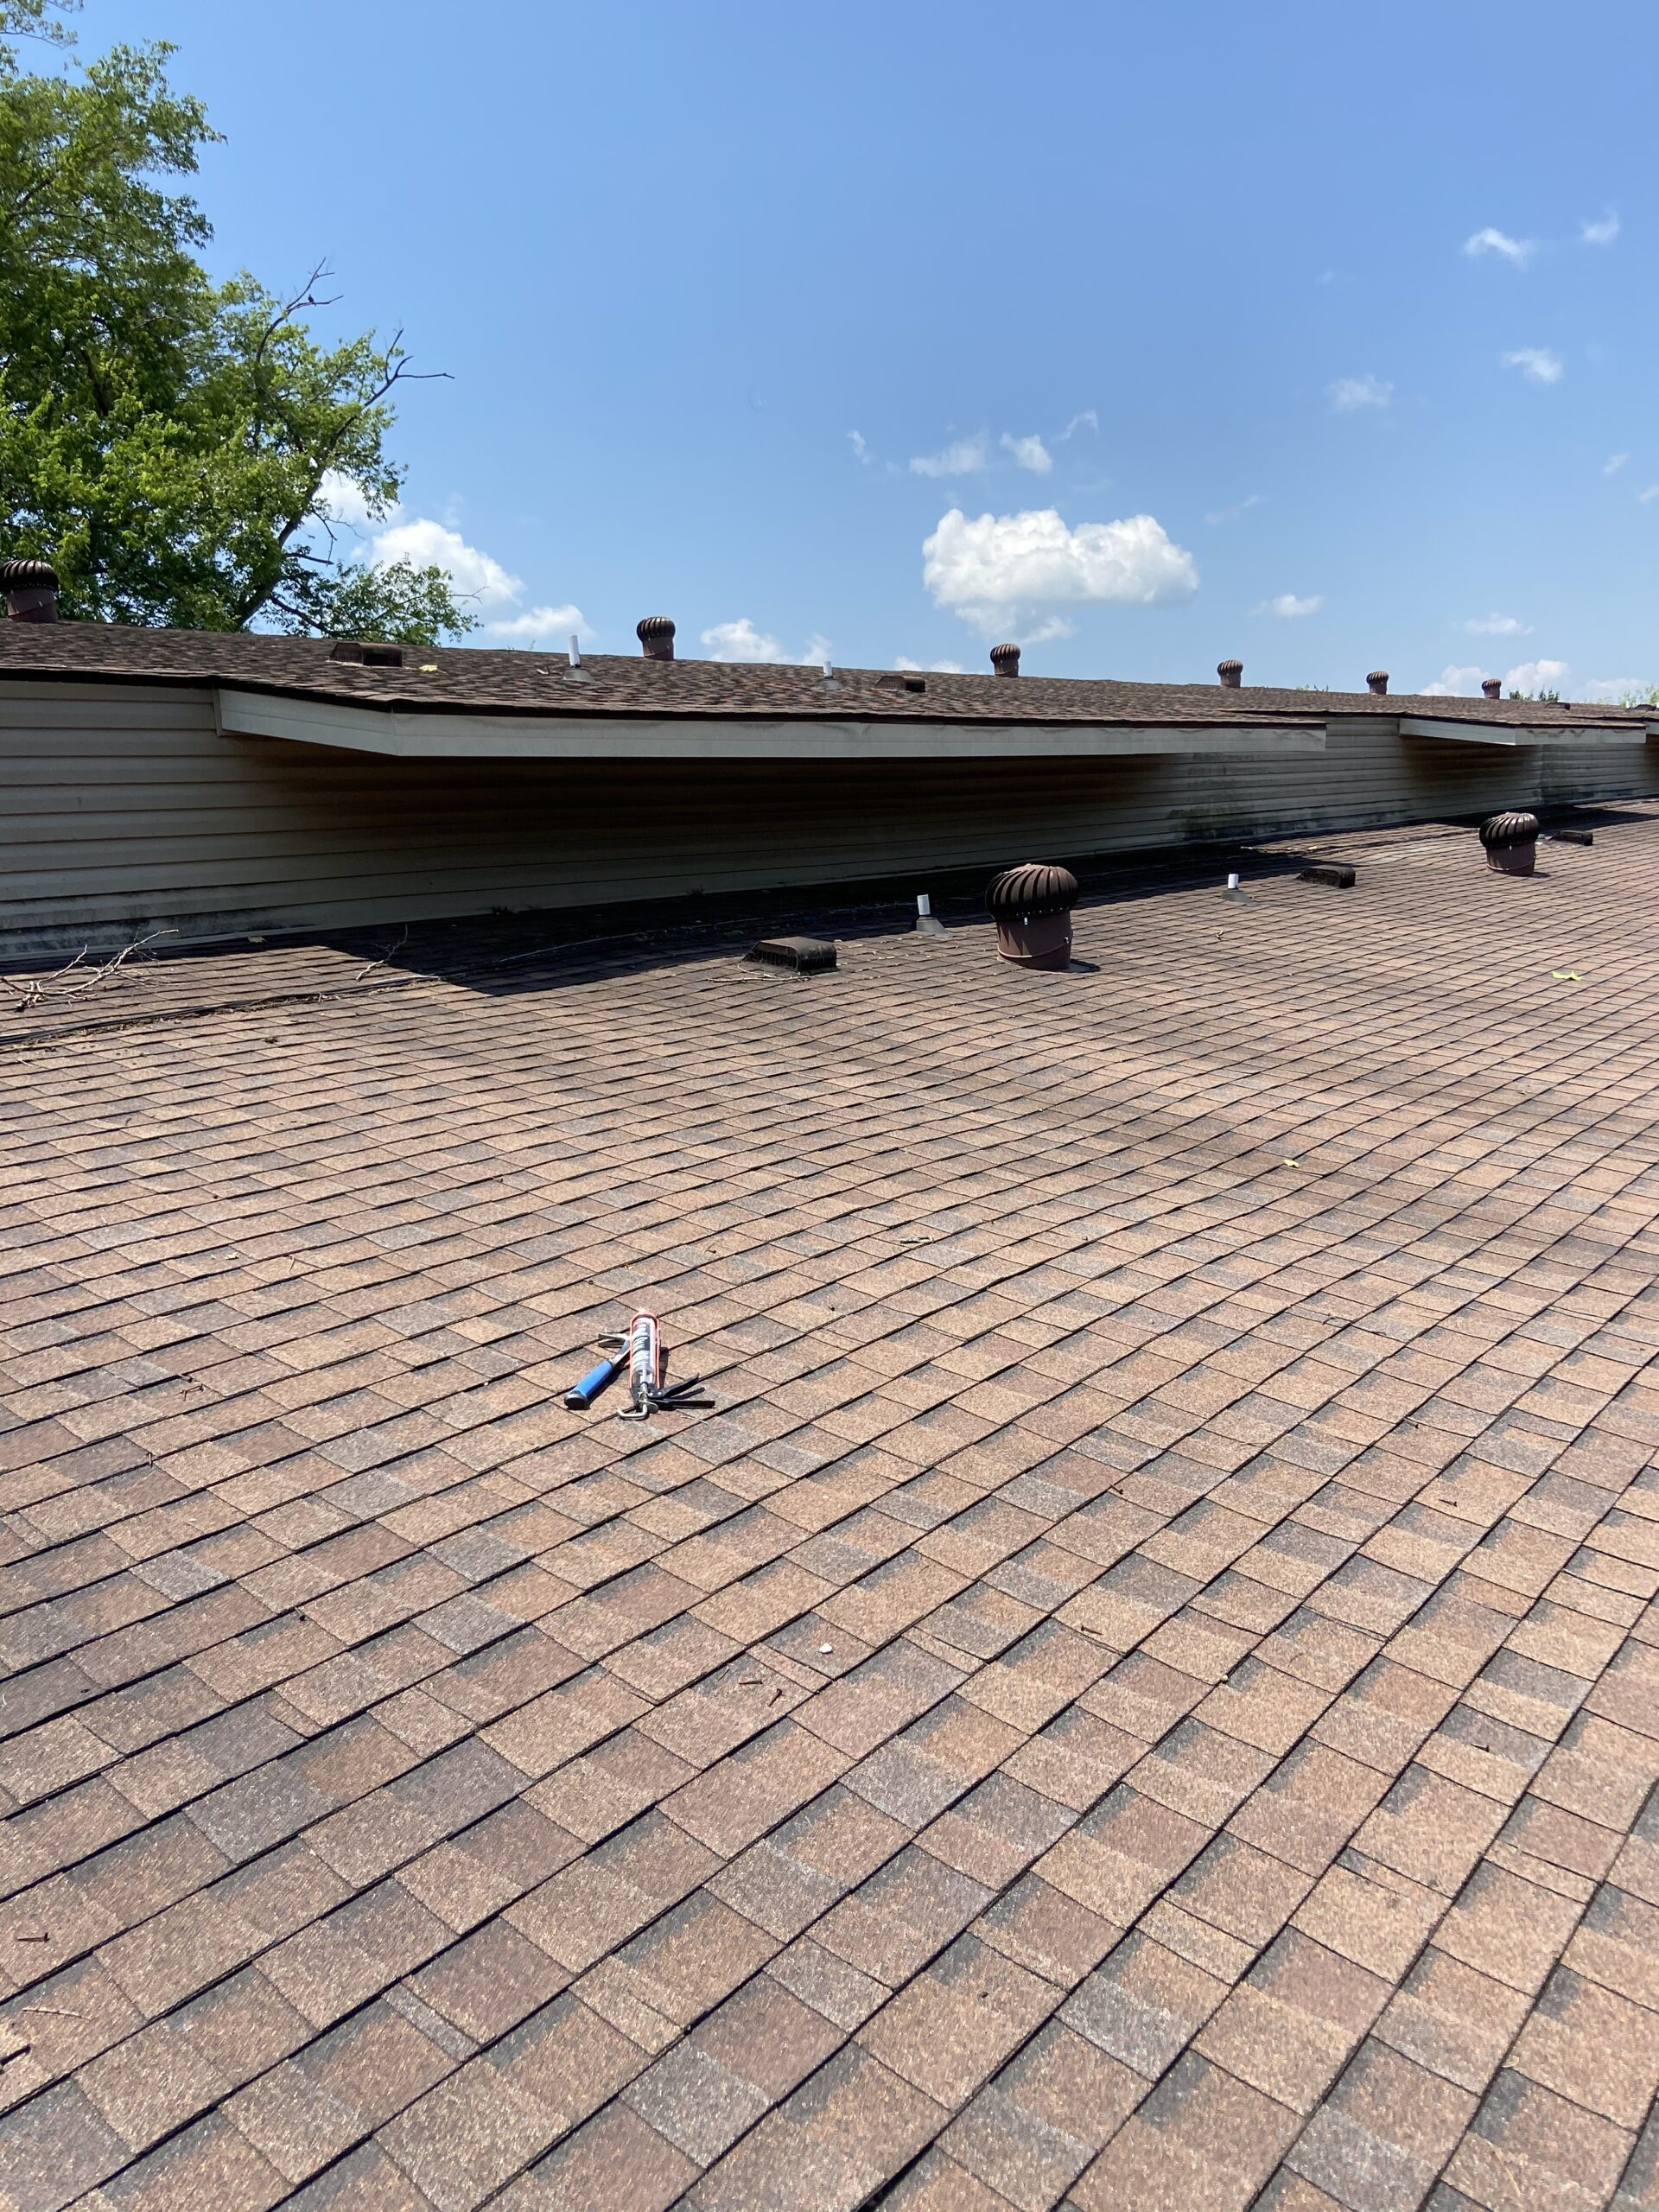 this is a picture of brown shingles on an apartment complex roof and the roof vents are in the picture